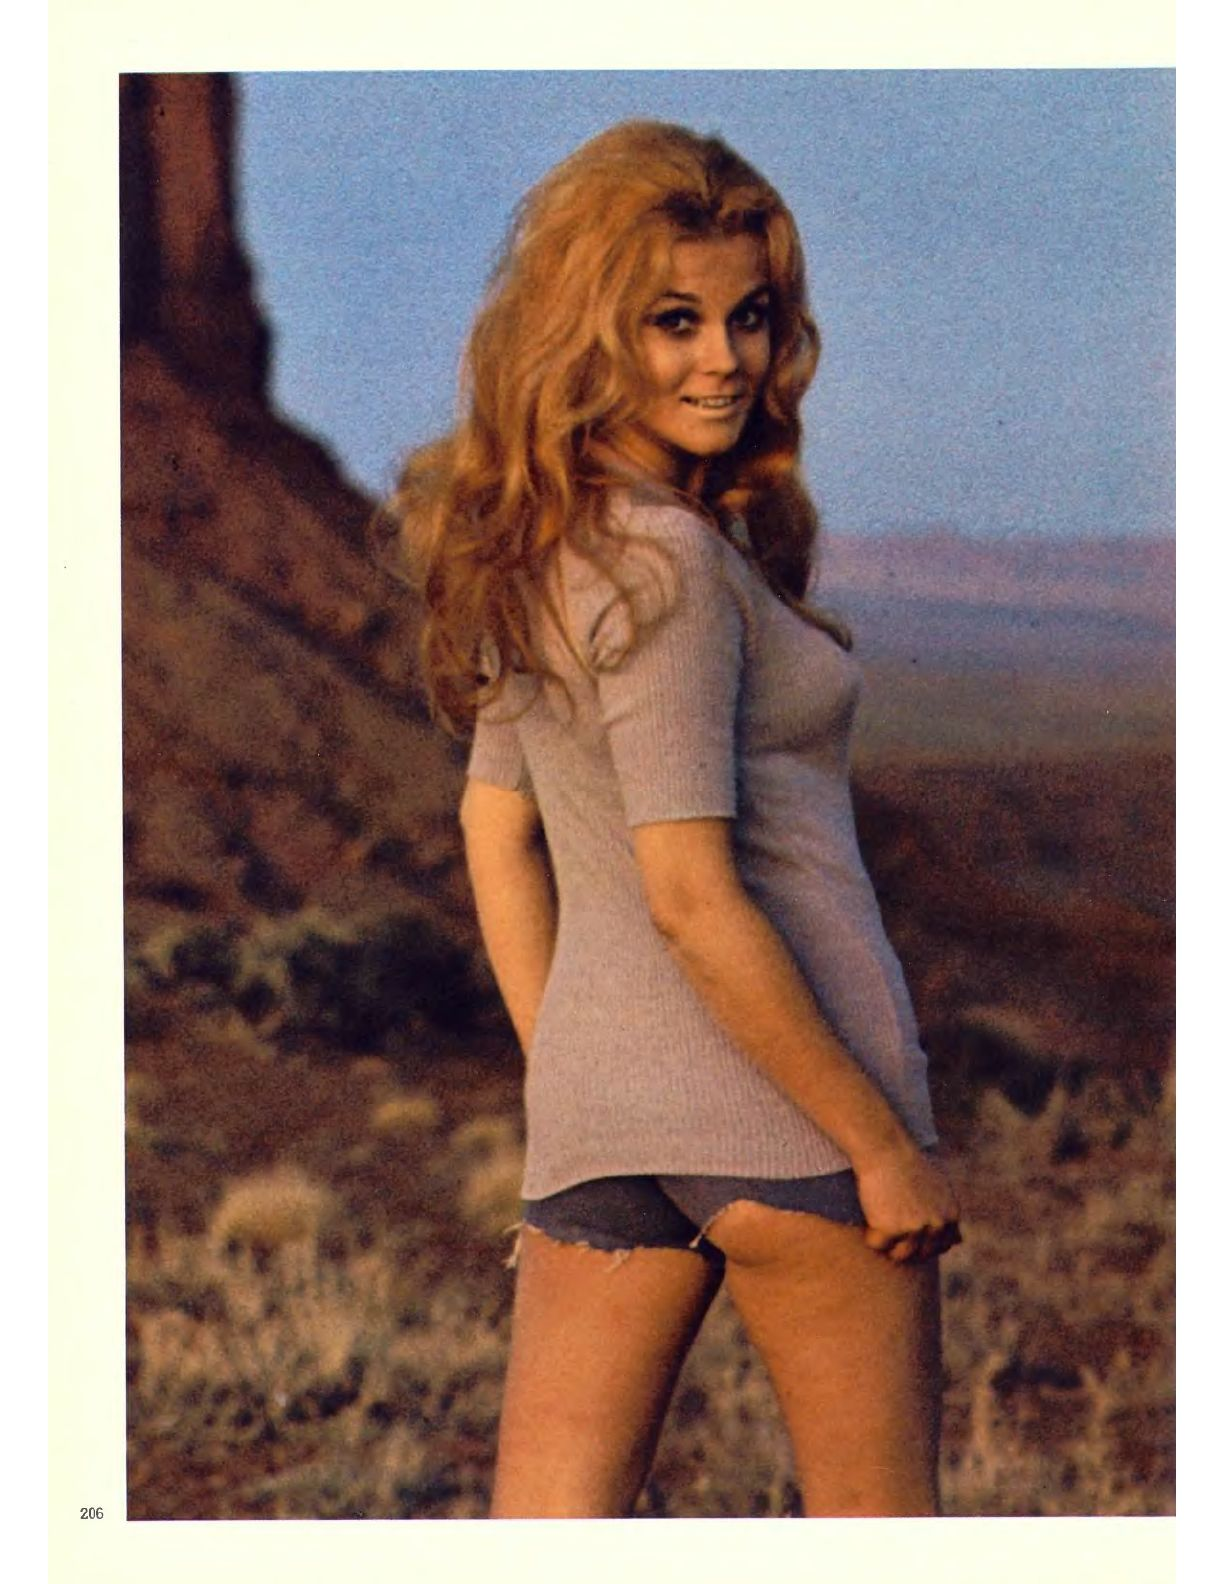 Ann Margaret Beautiful And Amazing She Took Care Of Her Husband